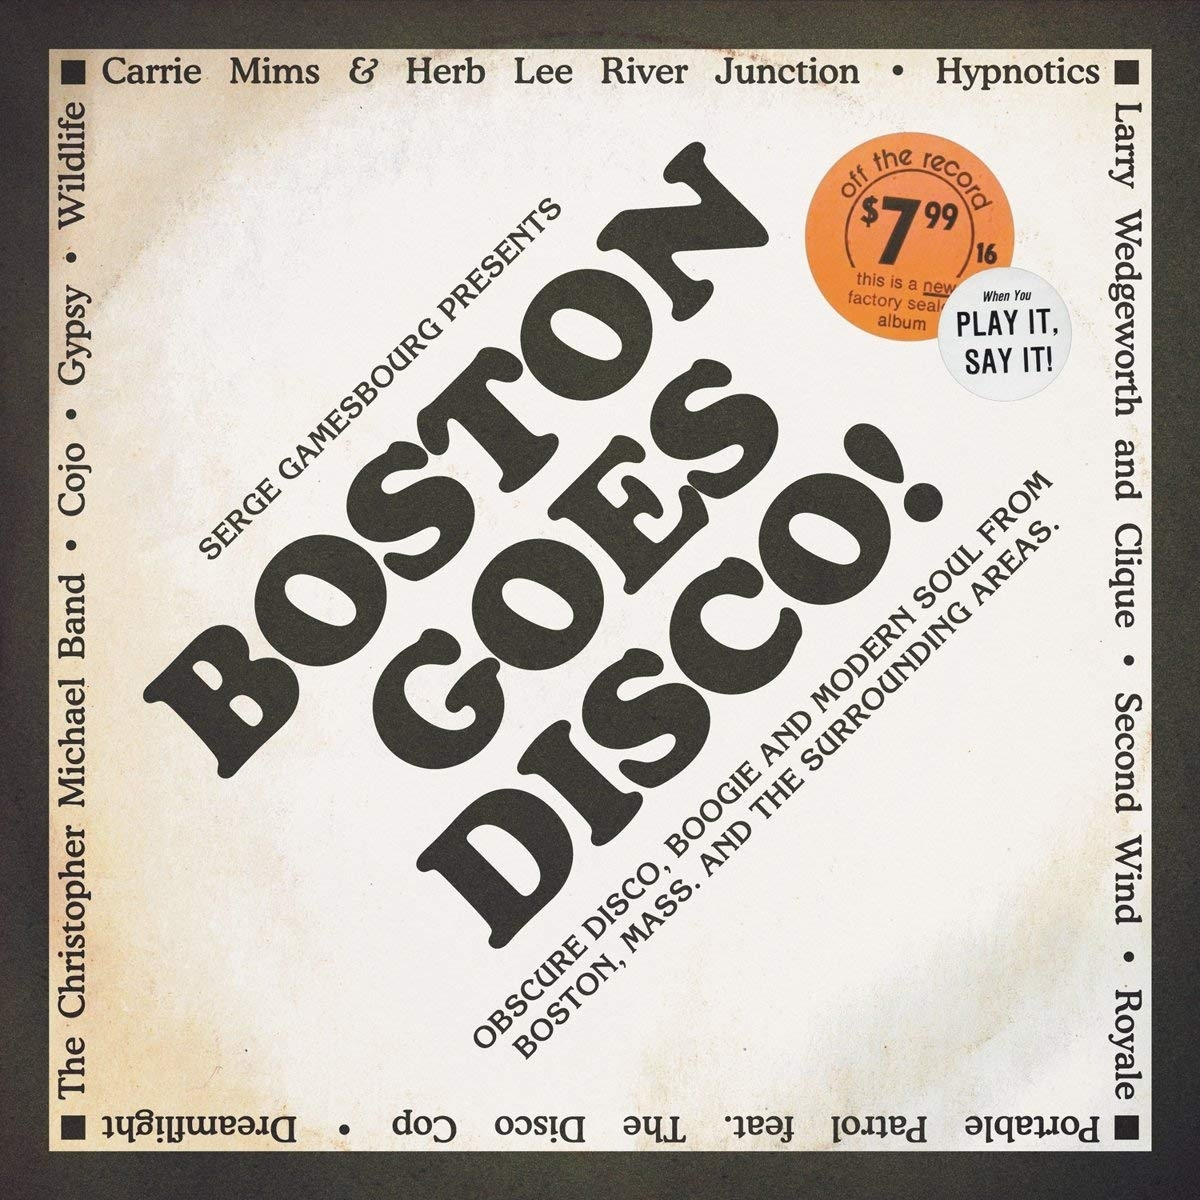 catalog 07 18 BostonDisco